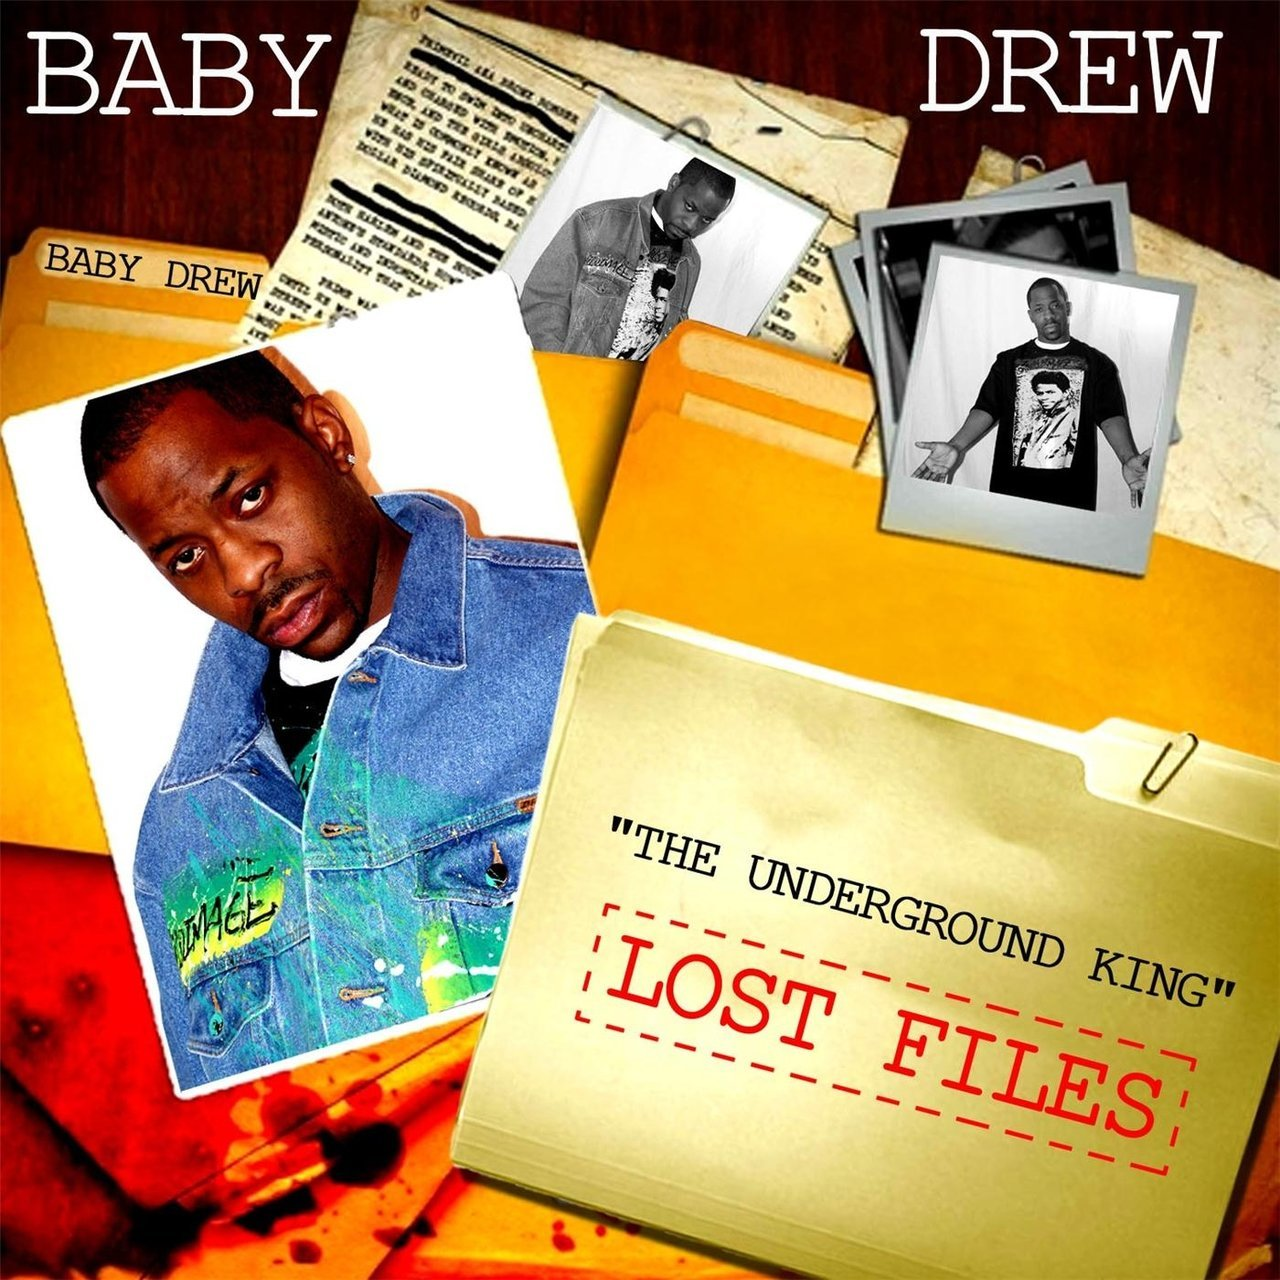 The Underground King Lost Files